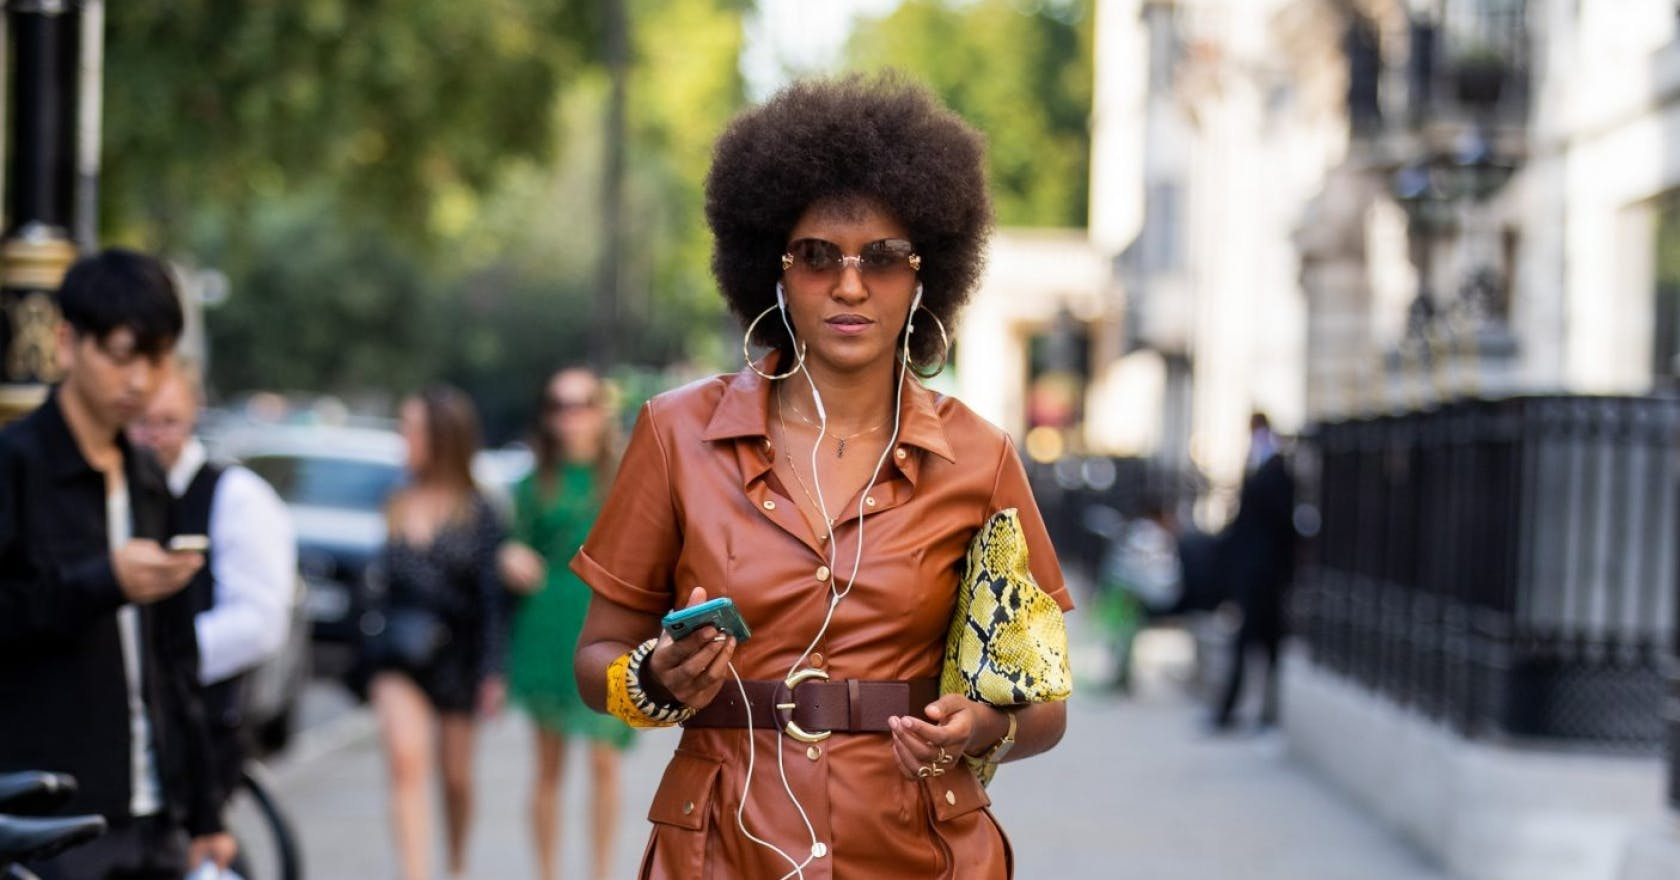 This leather dress is about to take over your Instagram feed in a big way